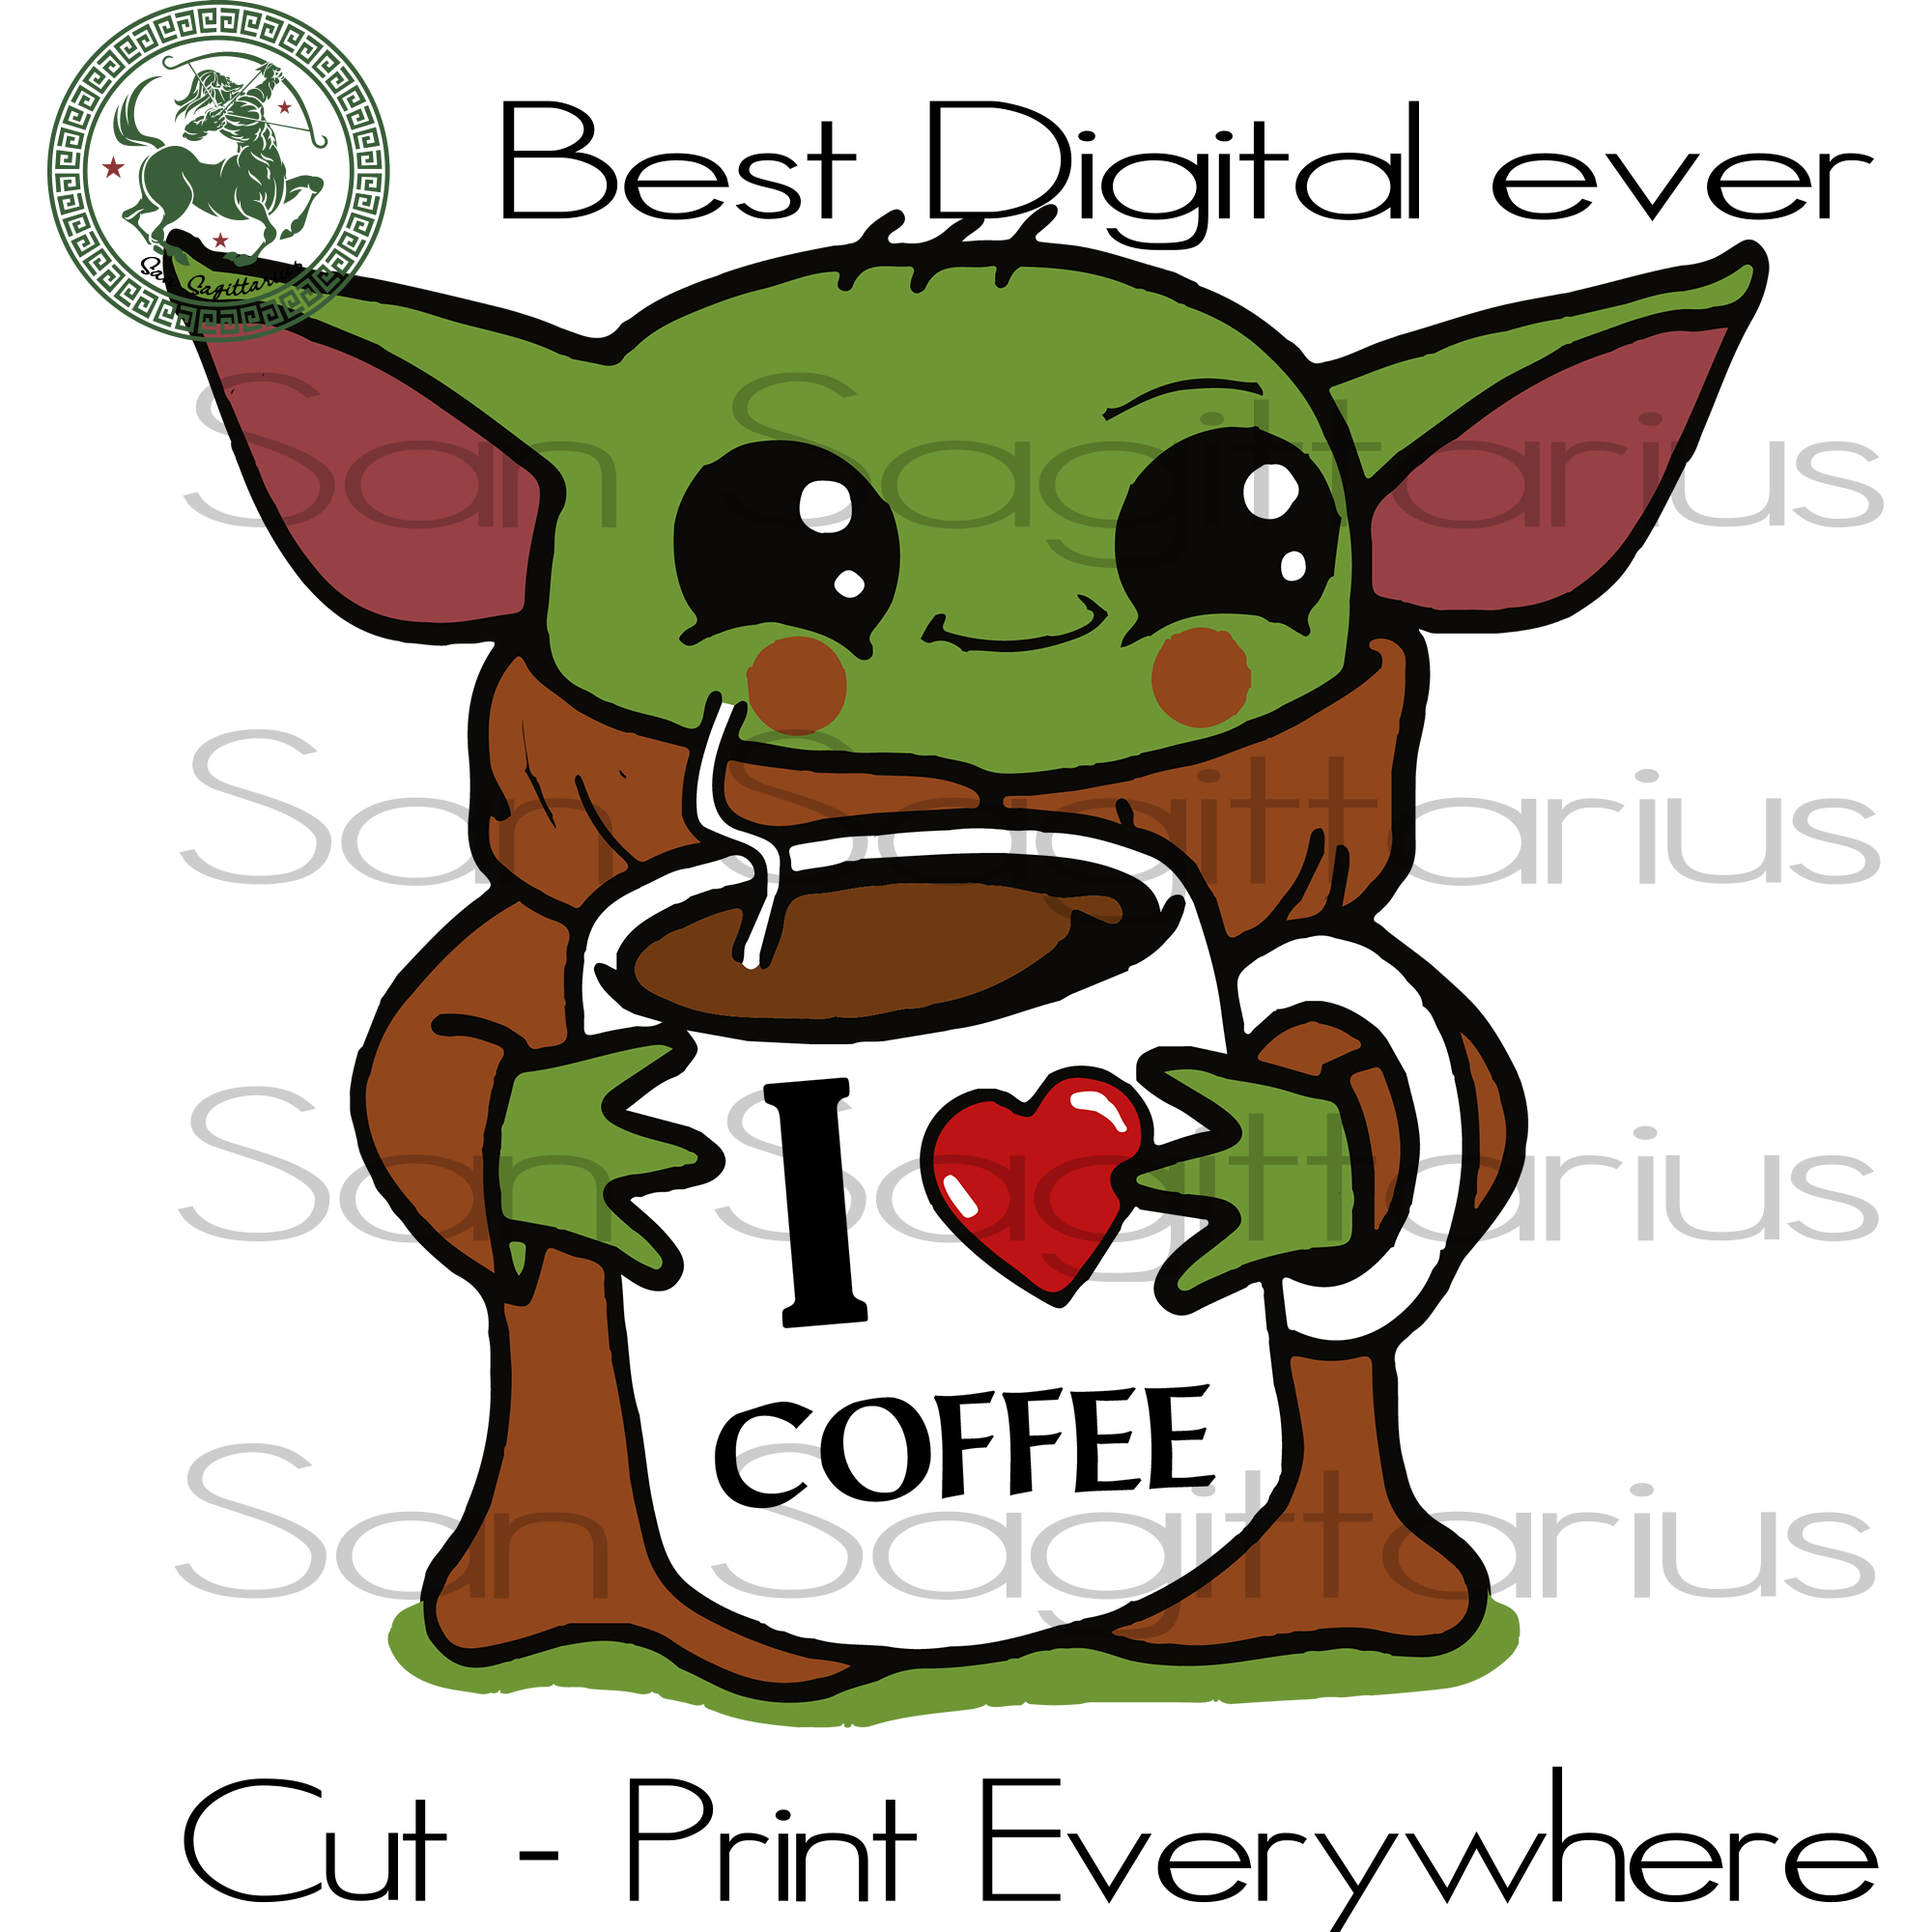 Baby Yoda Star Wars Coffee Lover Clipart SVG Files For Silhouette, Cricut Files, SVG DXF EPS PNG Instant Download